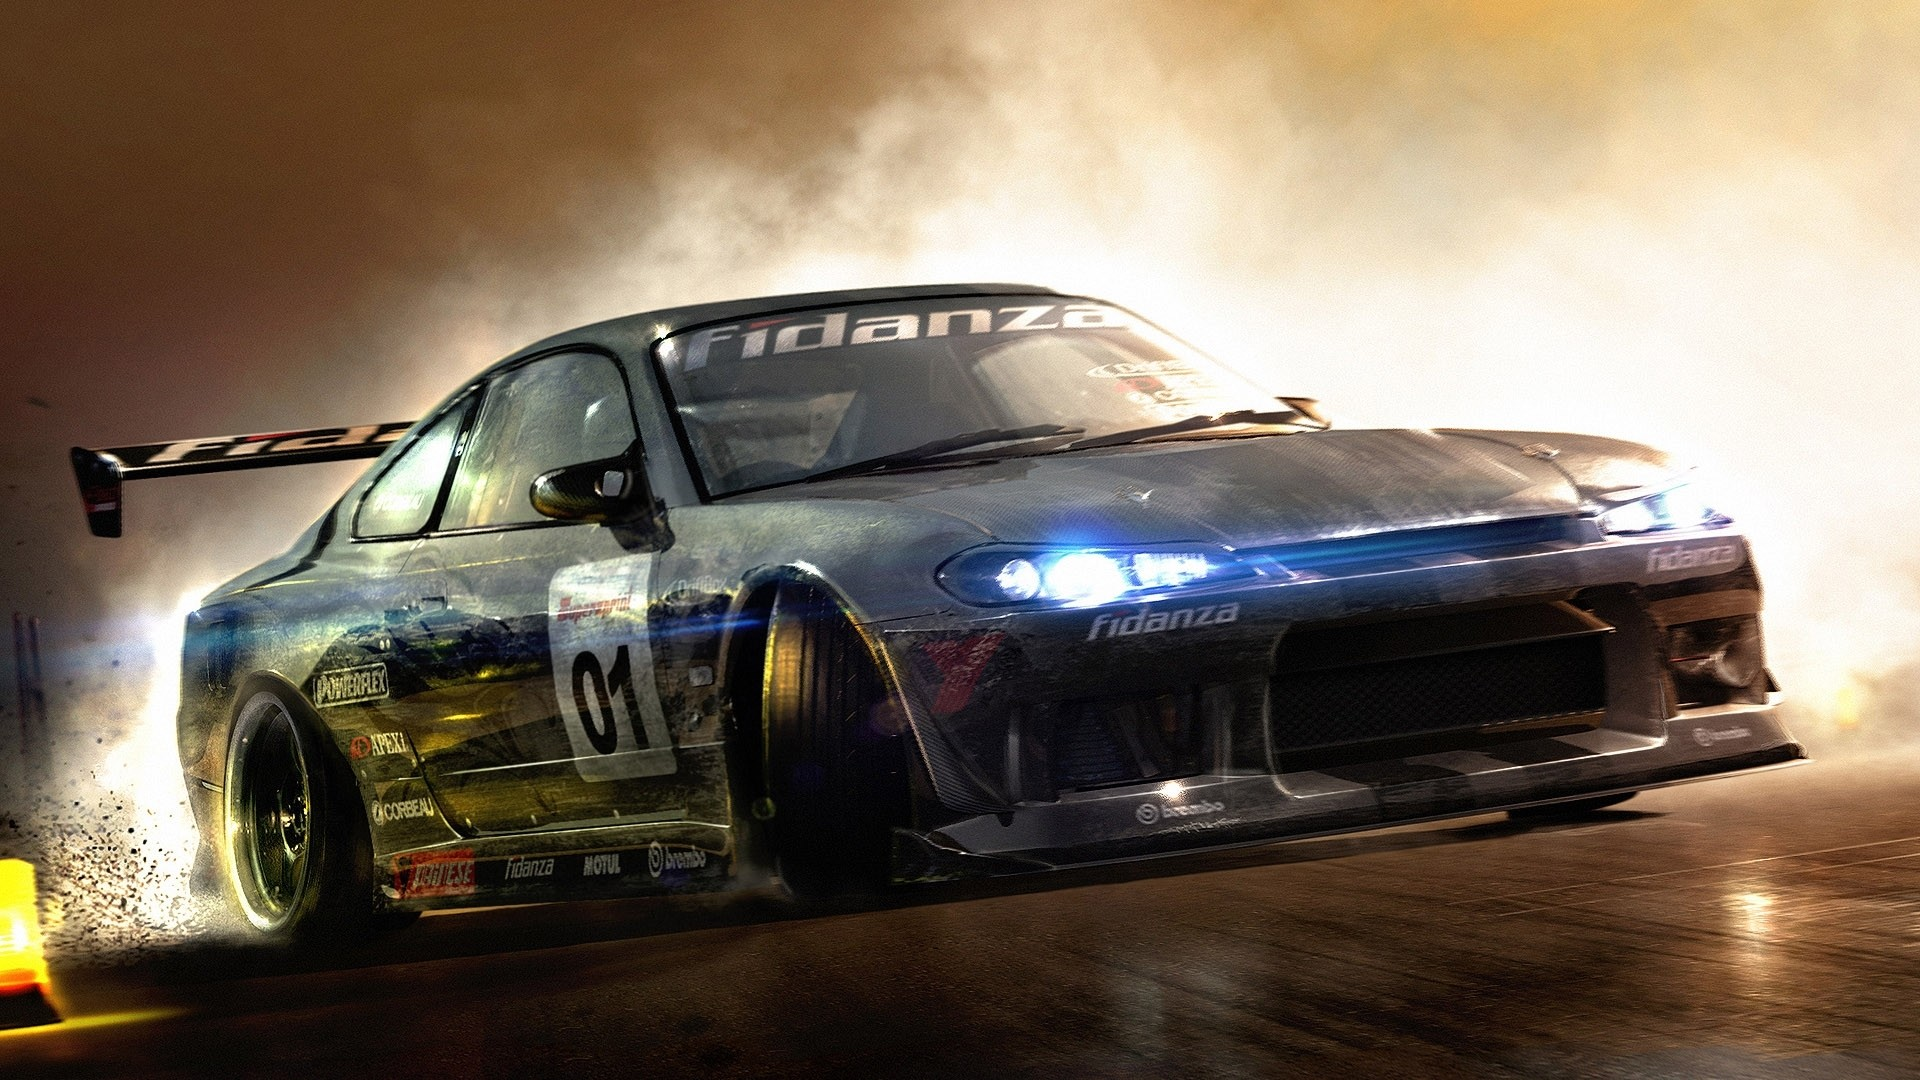 Epic Car Wallpapers: Epic Desktop Wallpapers And Backgrounds (62+ Images